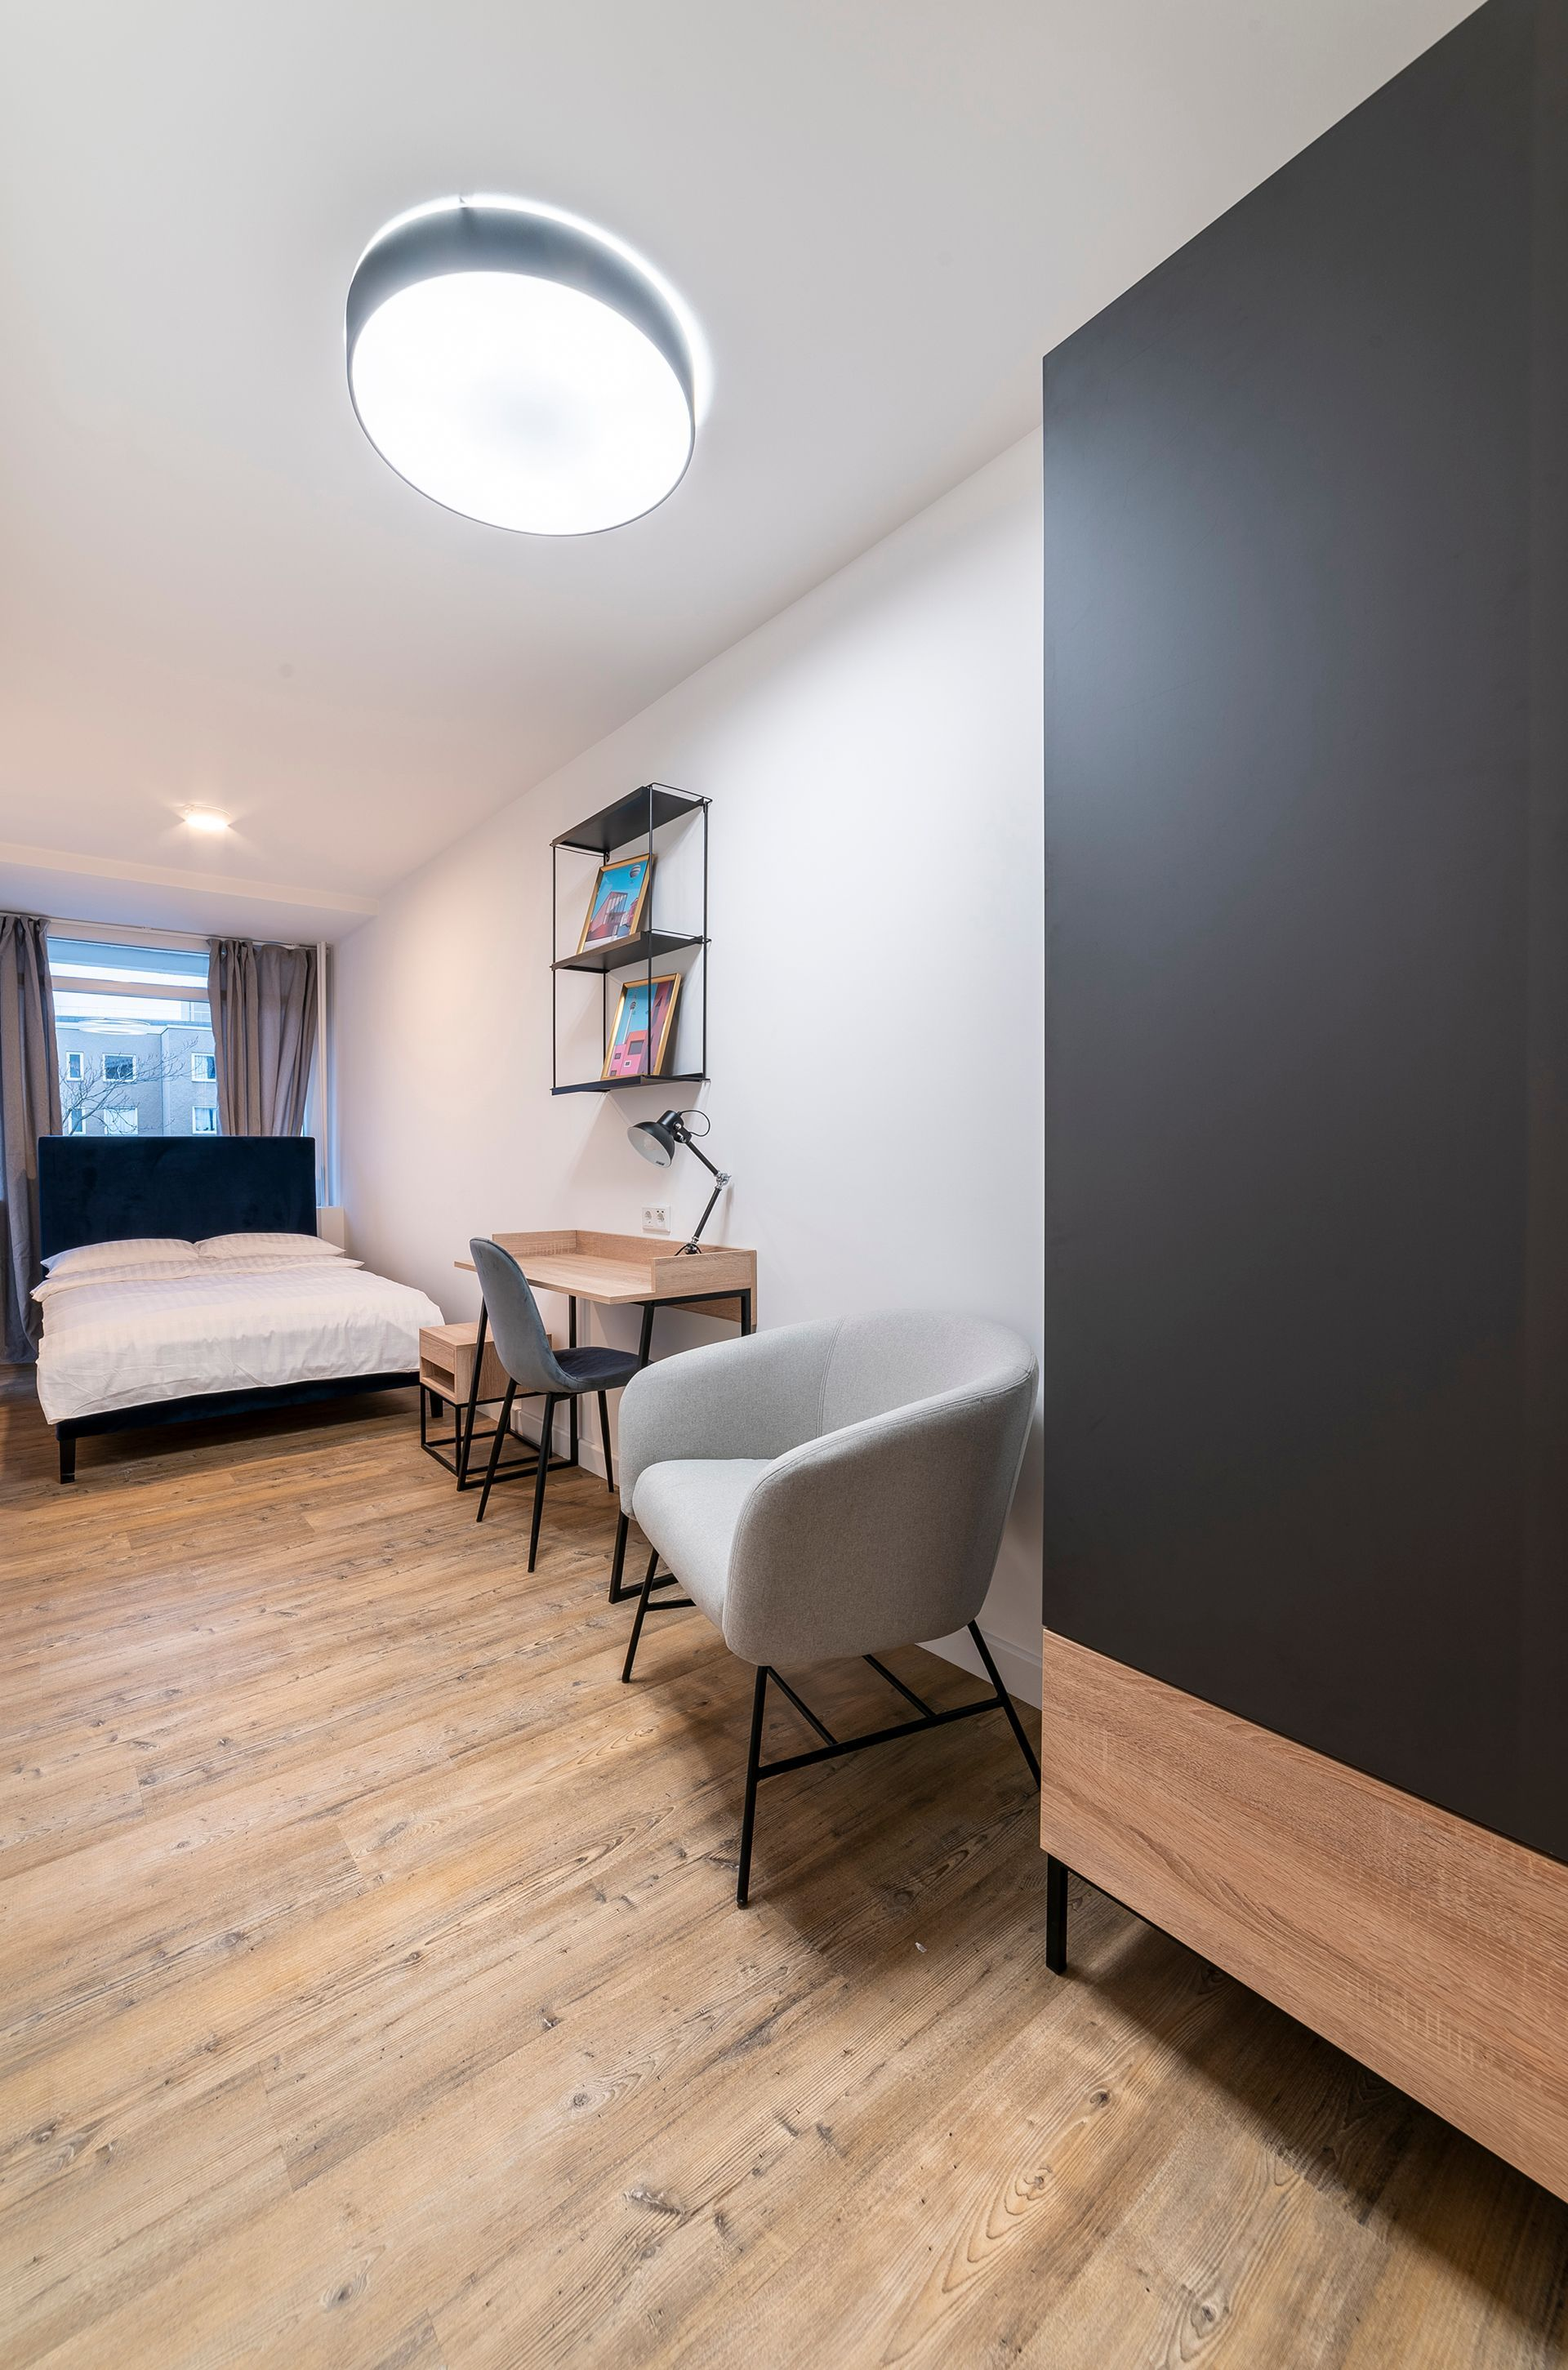 Private Room - Small apartment to rent in Berlin BILE-B104-3040-2